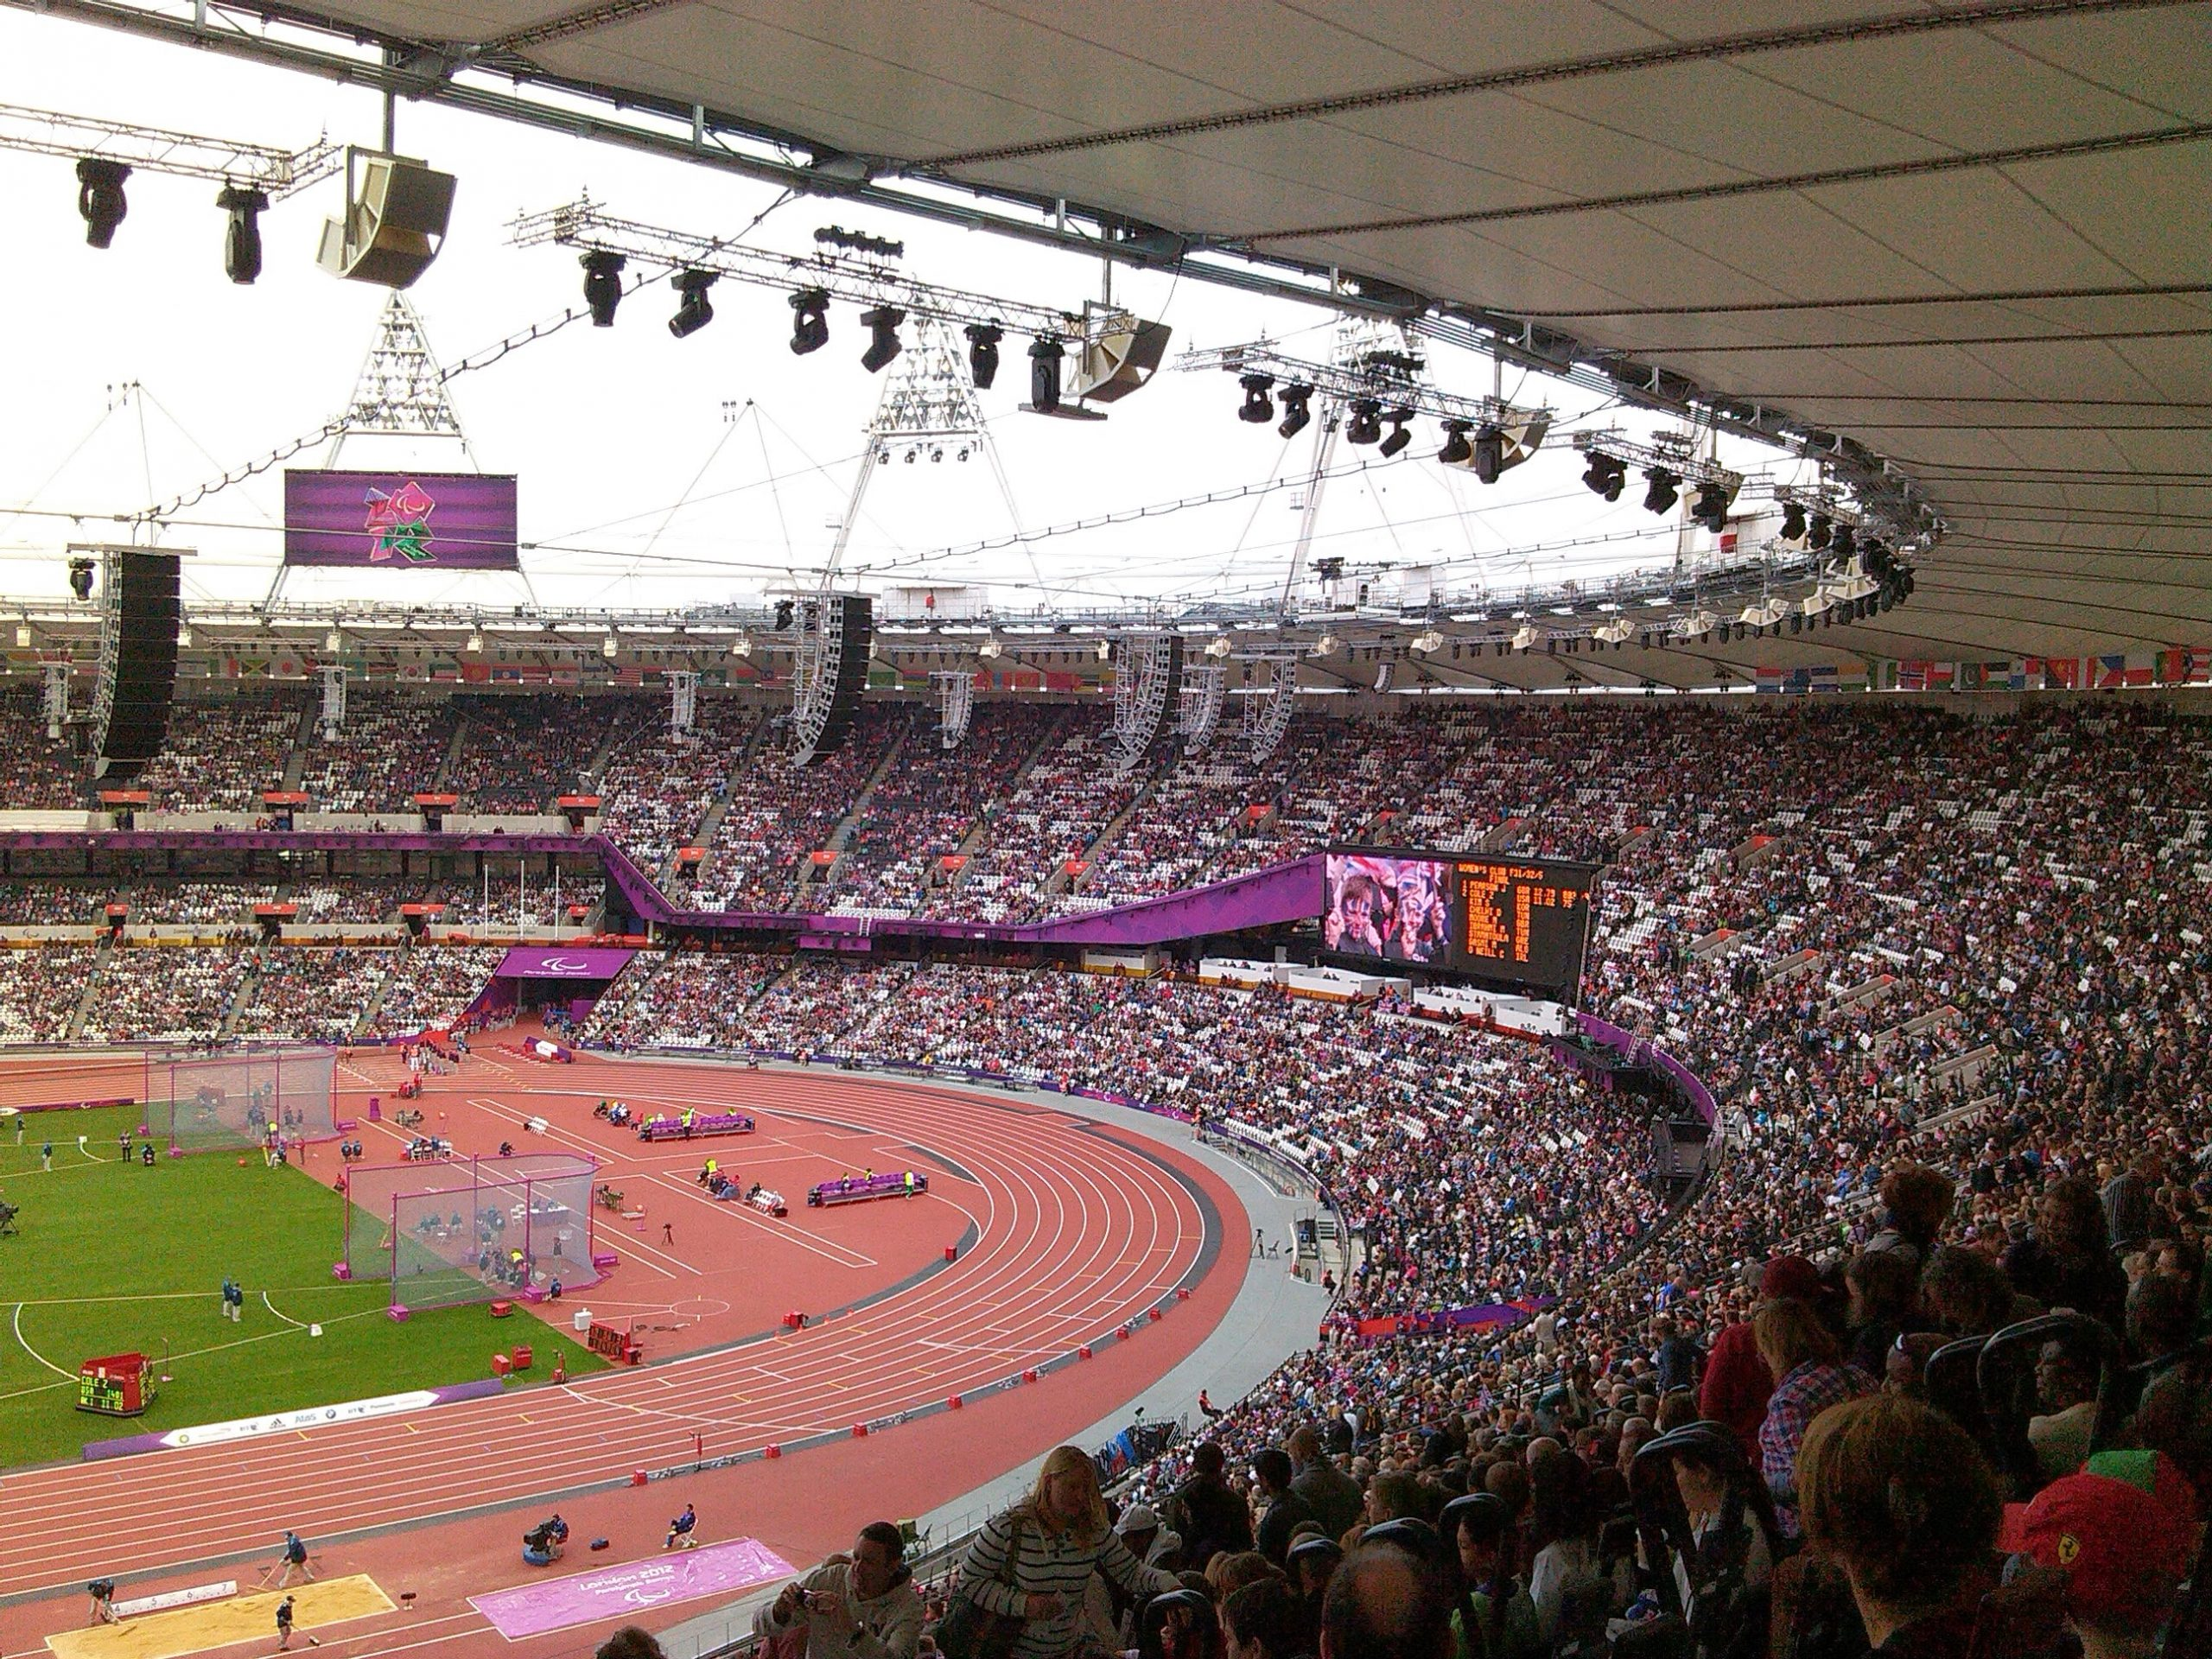 Spreading Optimism and Joy – and Covid? The Difficult Case of the 2020 Tokyo Olympics